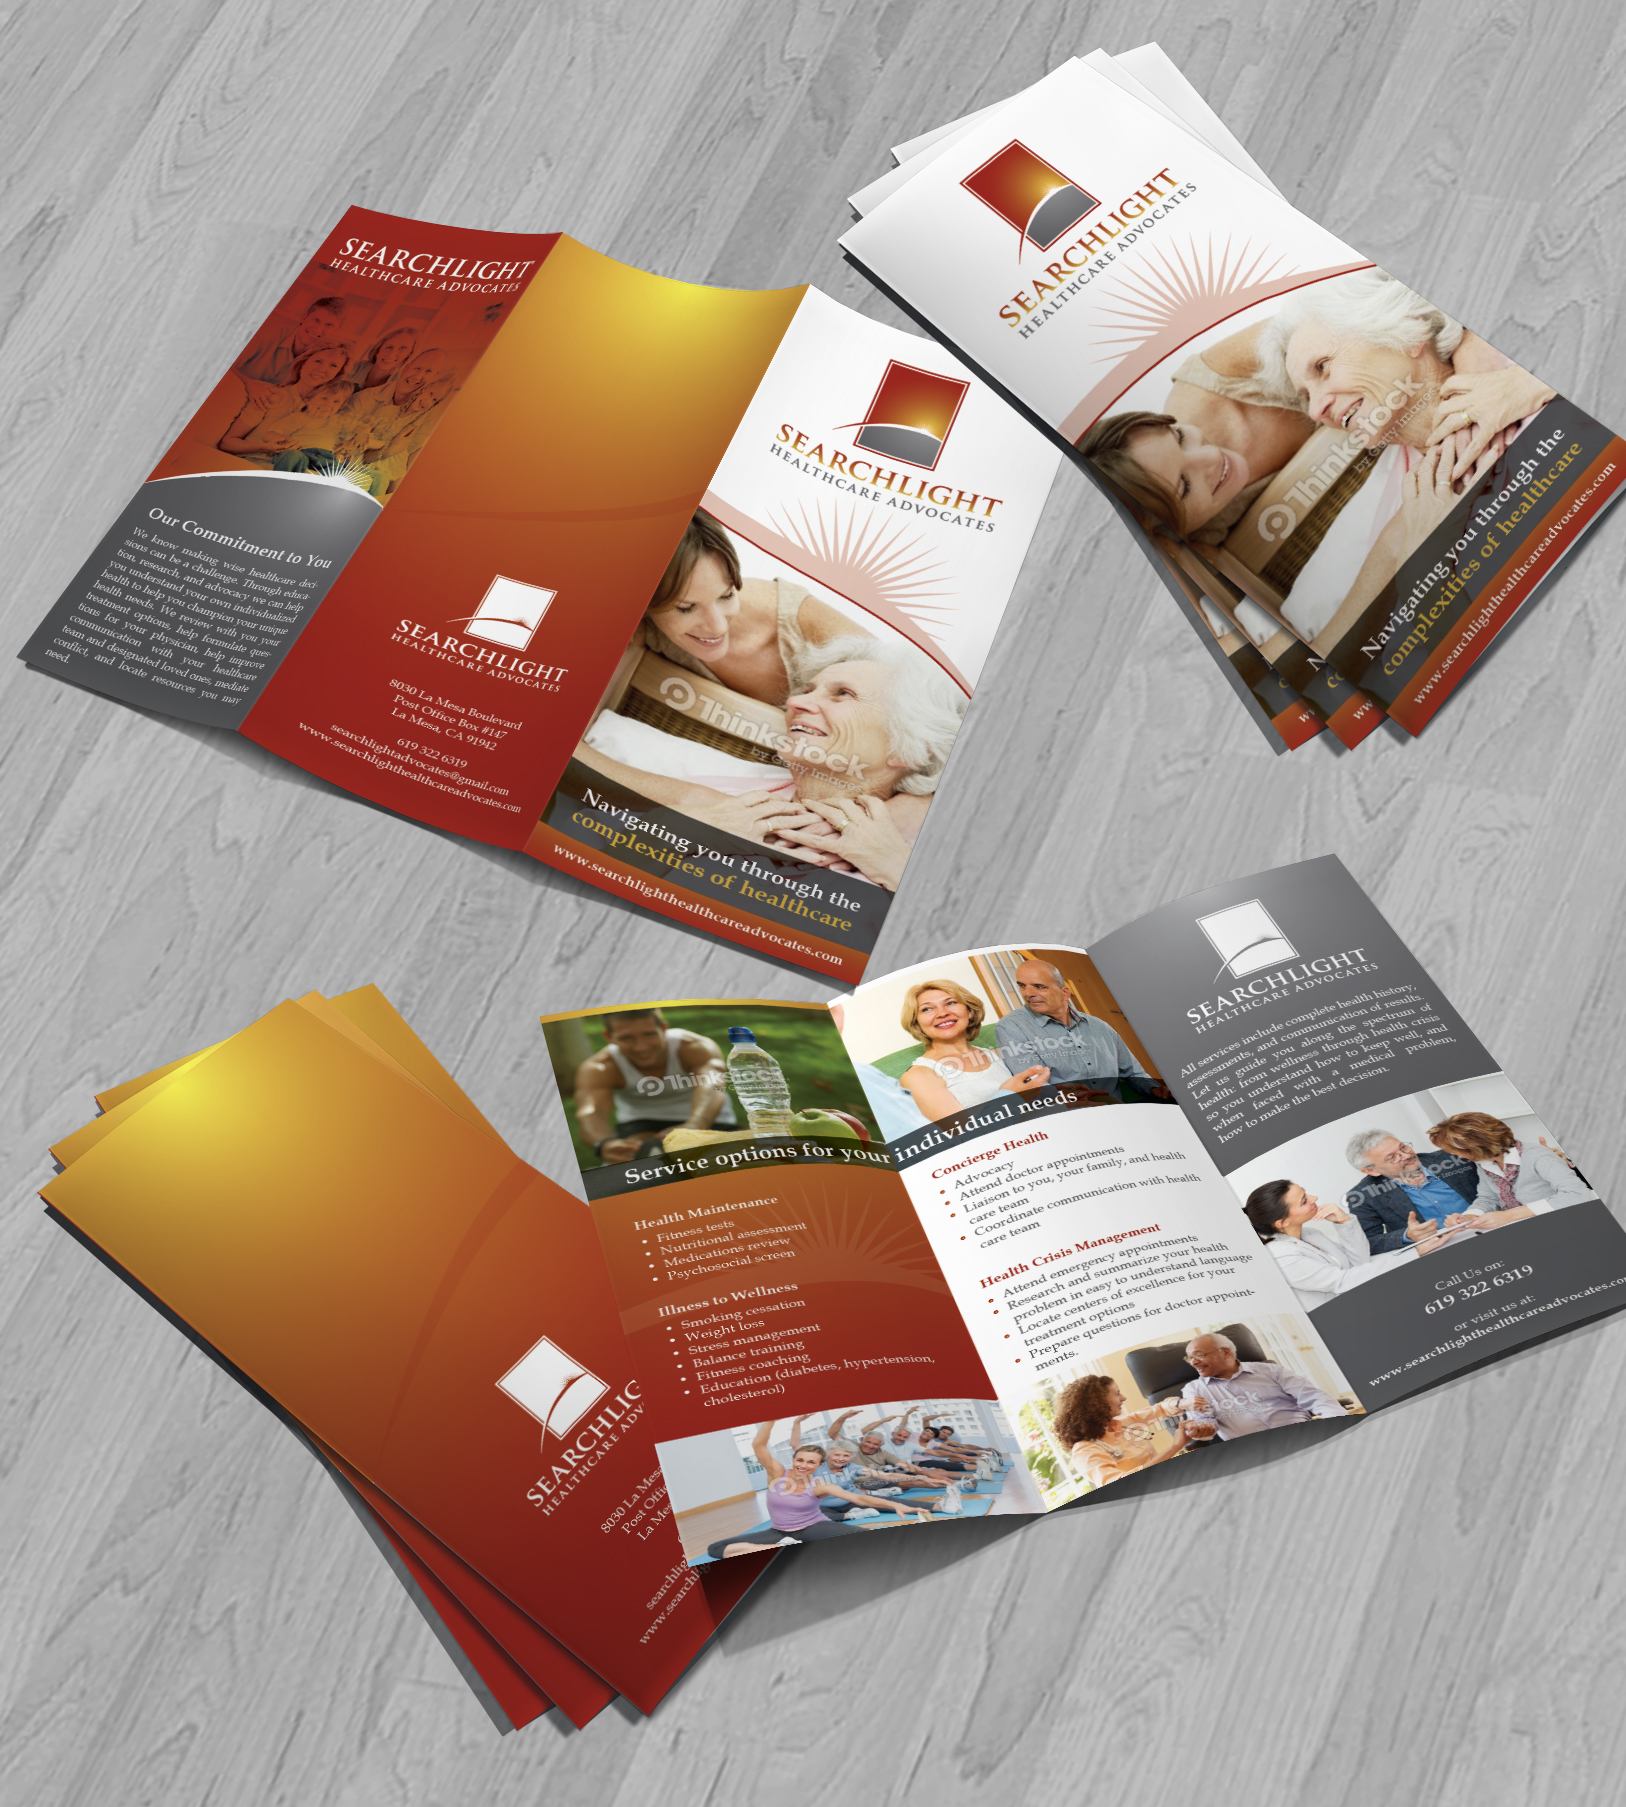 brochure for healthcare advocacy company - Health